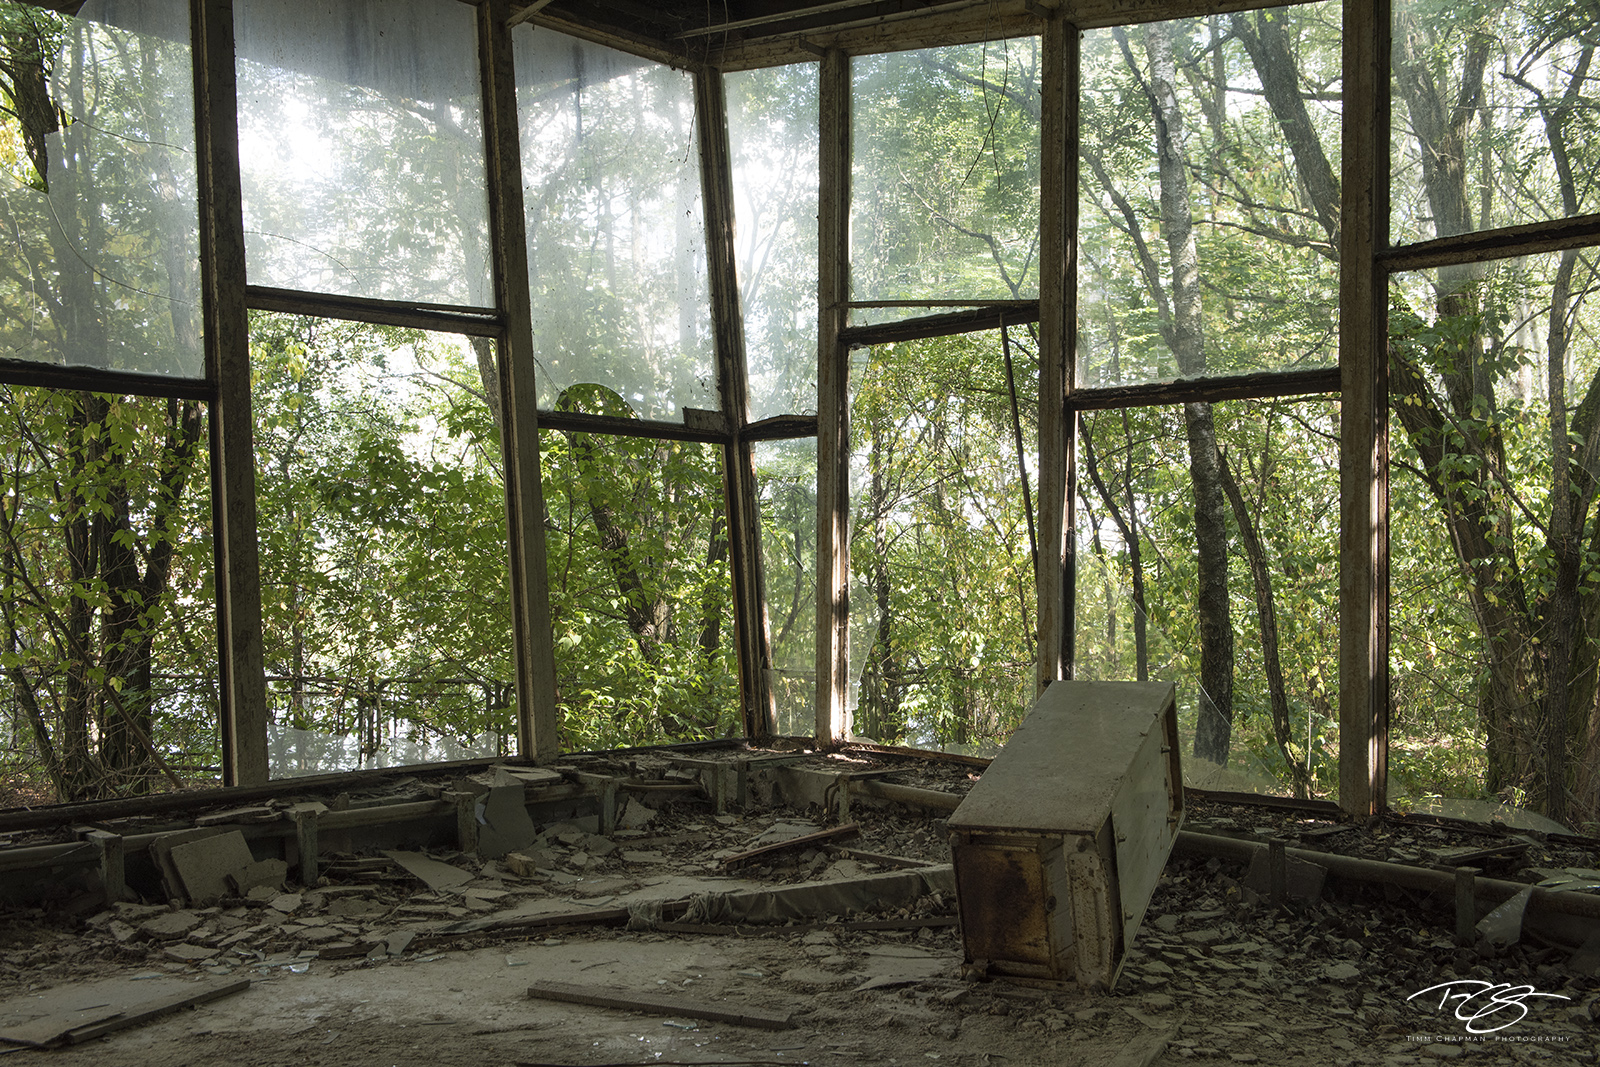 chernobyl, chornobyl, pripyat, exclusion zone, abandoned, forgotten, wasteland, radioactive, decay, cafe, glass, dust, dirty, weathered, debris, the dish, cafe pripyat, window, trees, room with a view, photo